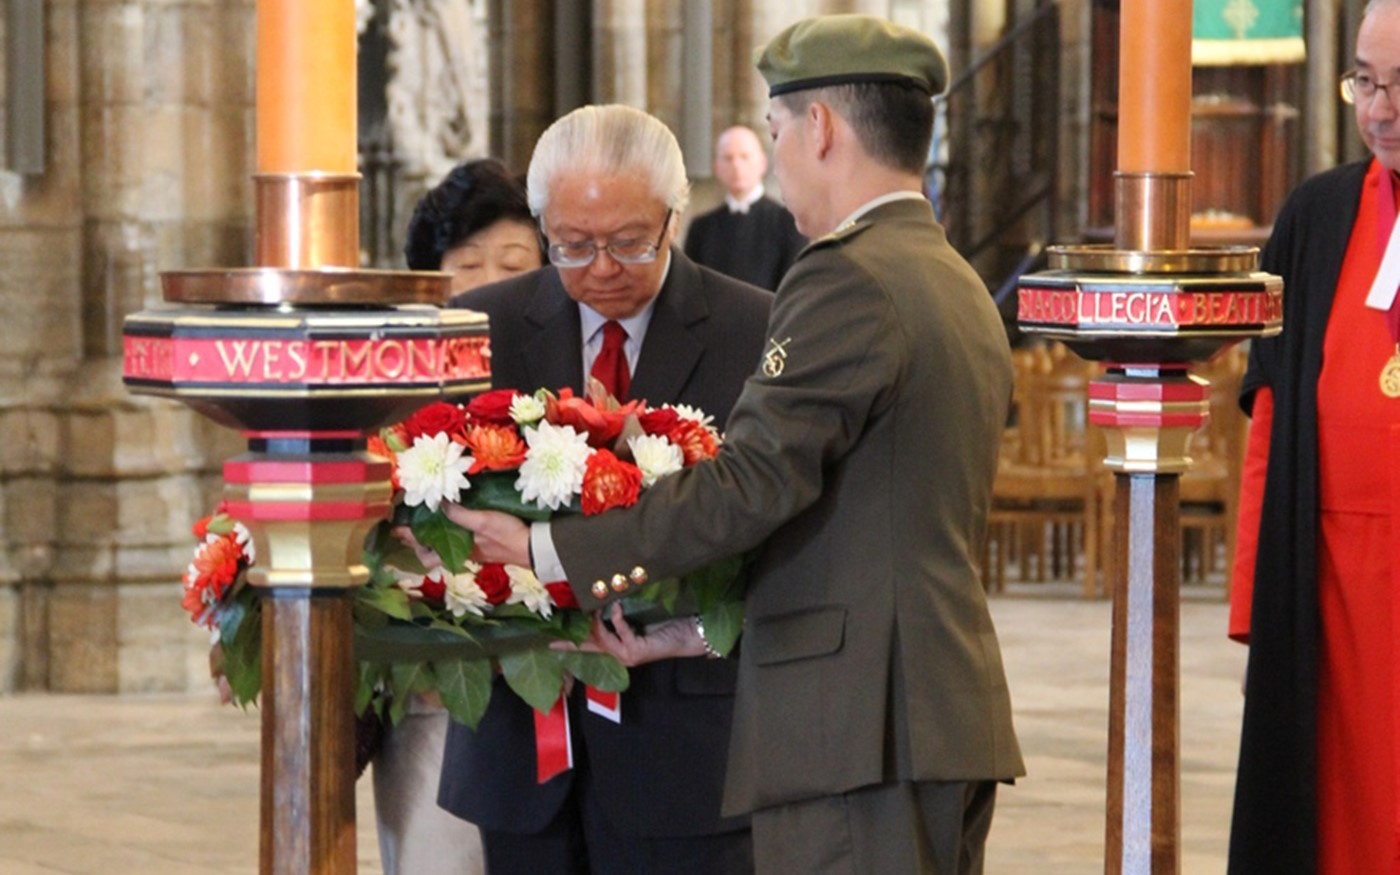 His Excellency Dr Tony Tan Keng Yam, President of the Republic of Singapore lays a wreath at the Grave of the Unknown Warrior